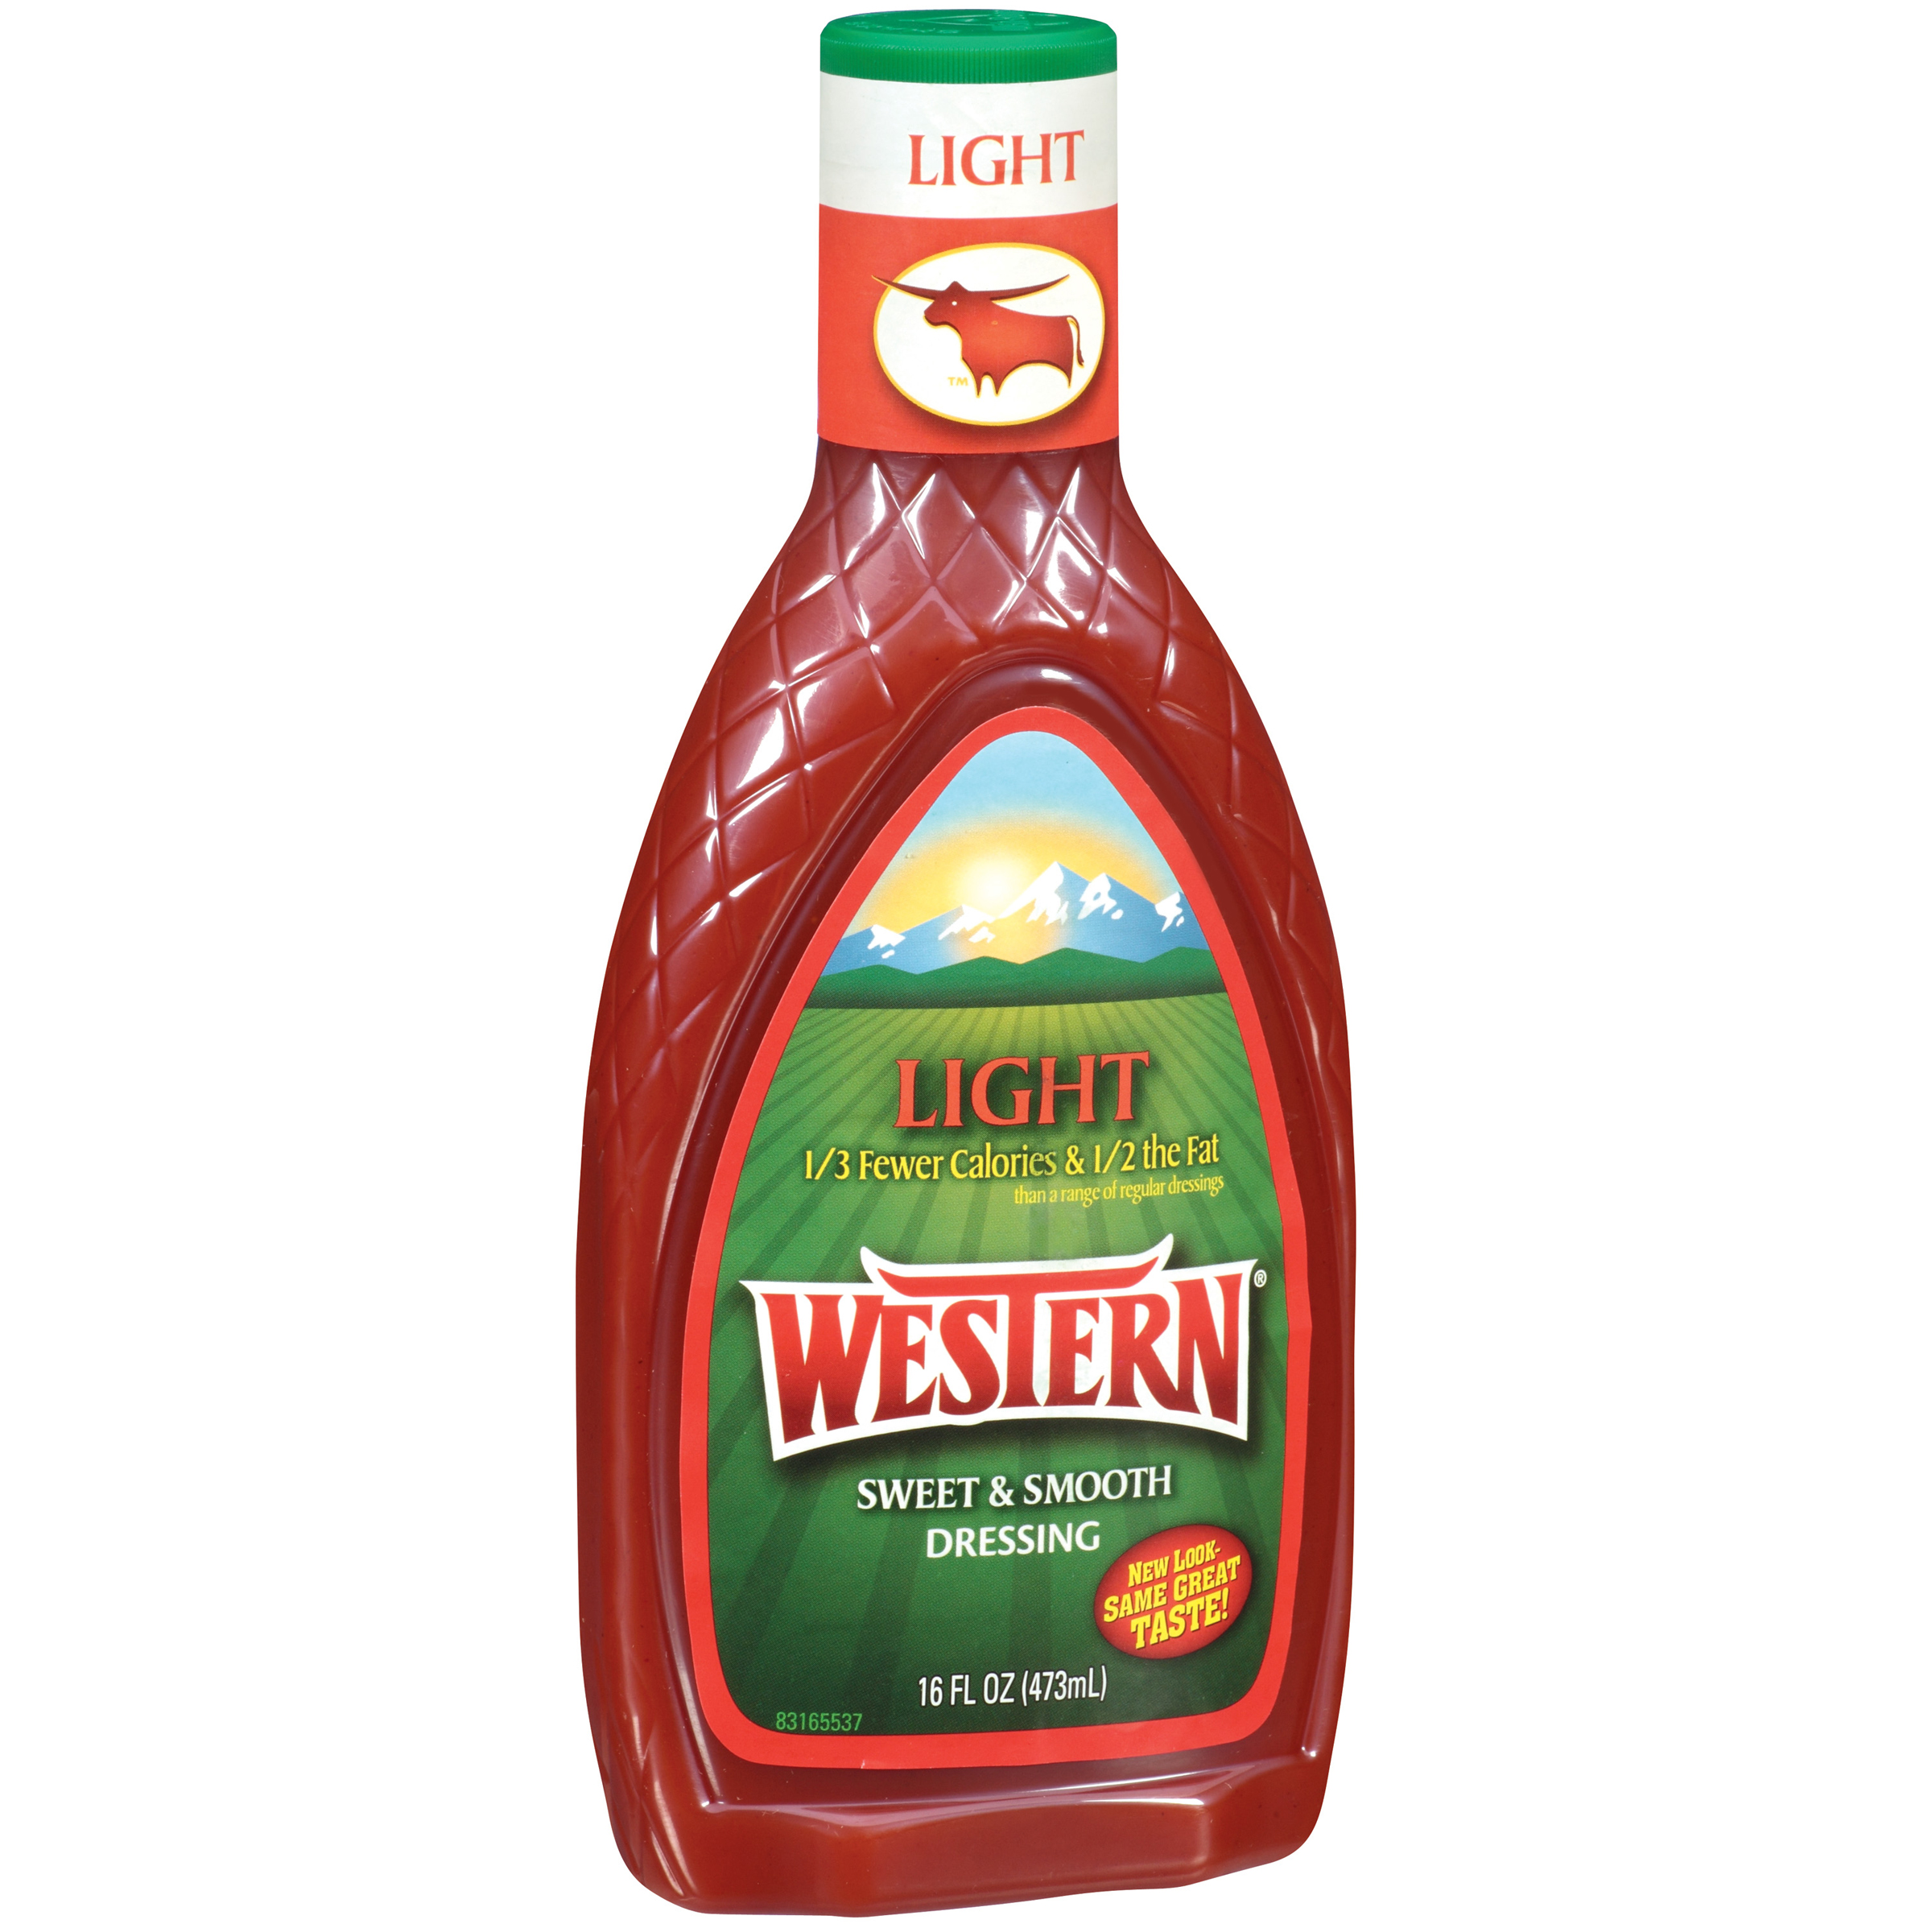 Western Light Salad Dressing 16 Oz Plastic Bottle